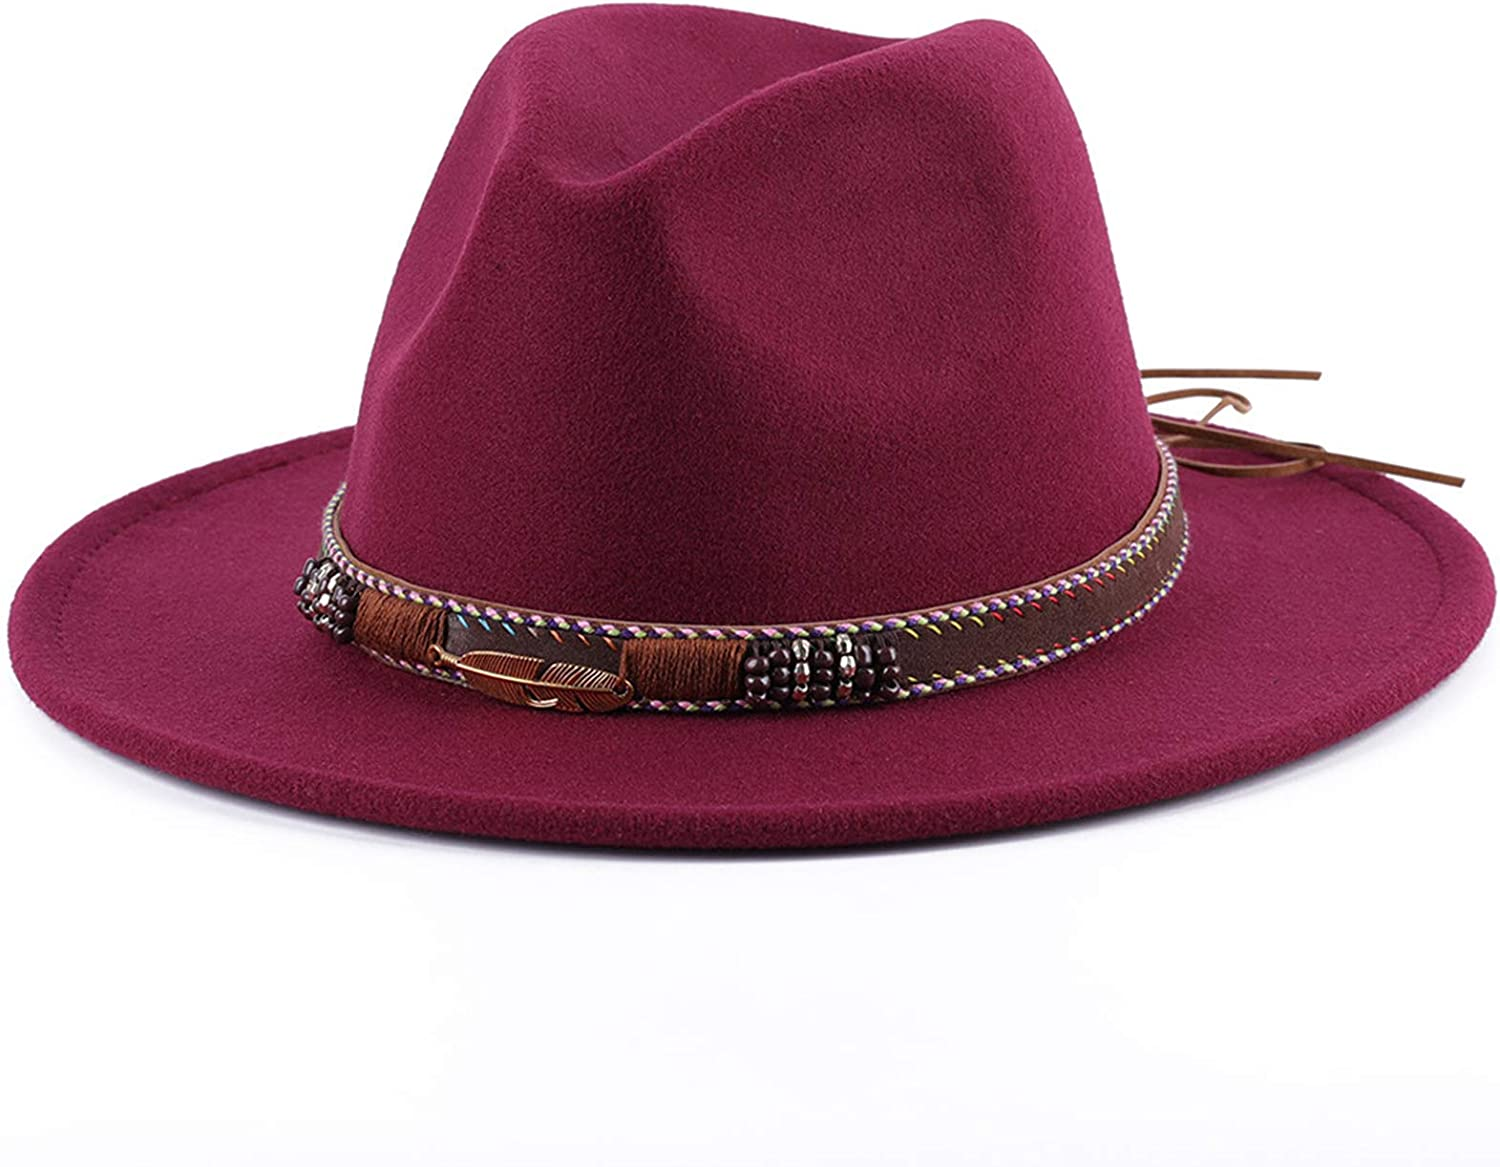 VIREO Cowgirl Hat, Fedora Hats for Women,Autumn and Winter Big Brim Hat